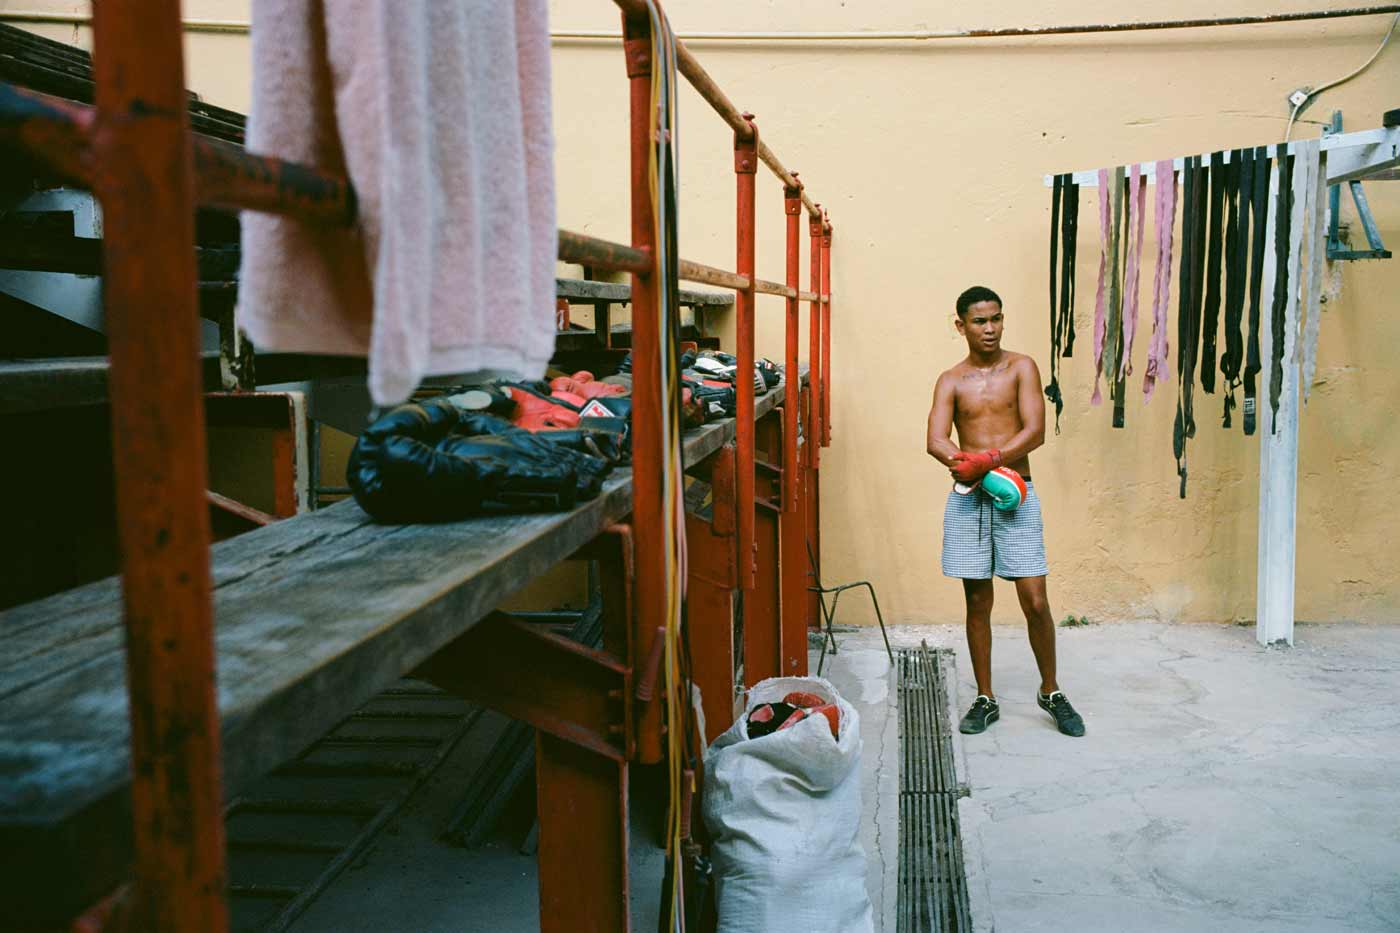 35mm-focal-length-guide-tips-beginner-documentary-story-telling-zone-focus-field-view-perspective-compression-angle-summilux-cuba-havana-film-photography